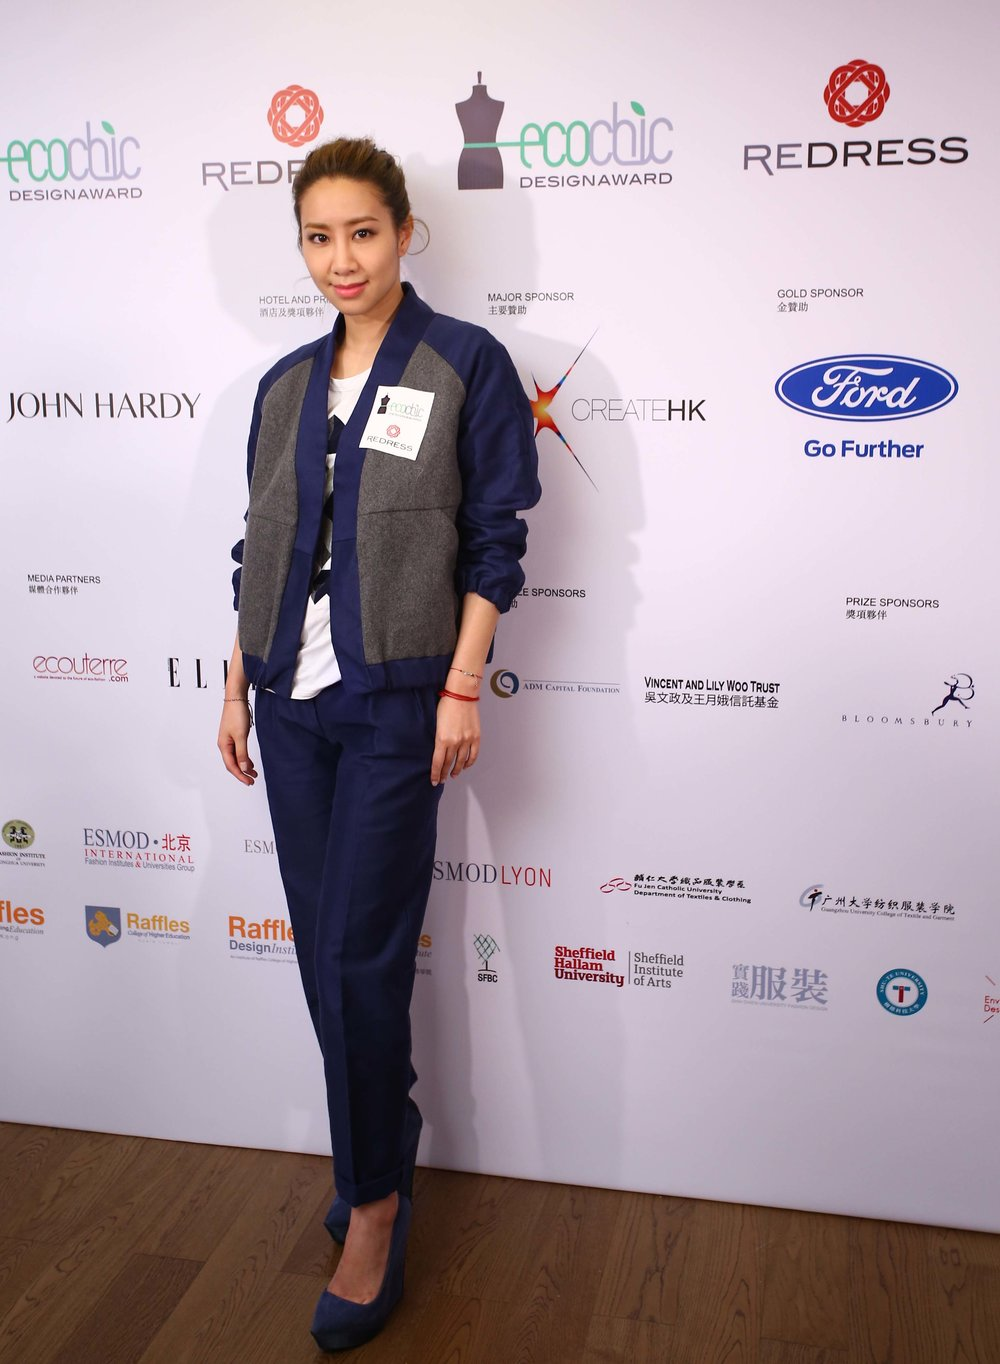 Hong Kong singer Kary Ng wears Louise de Testa to attend the Redress Design Award 2015/16 Hong Kong launch event